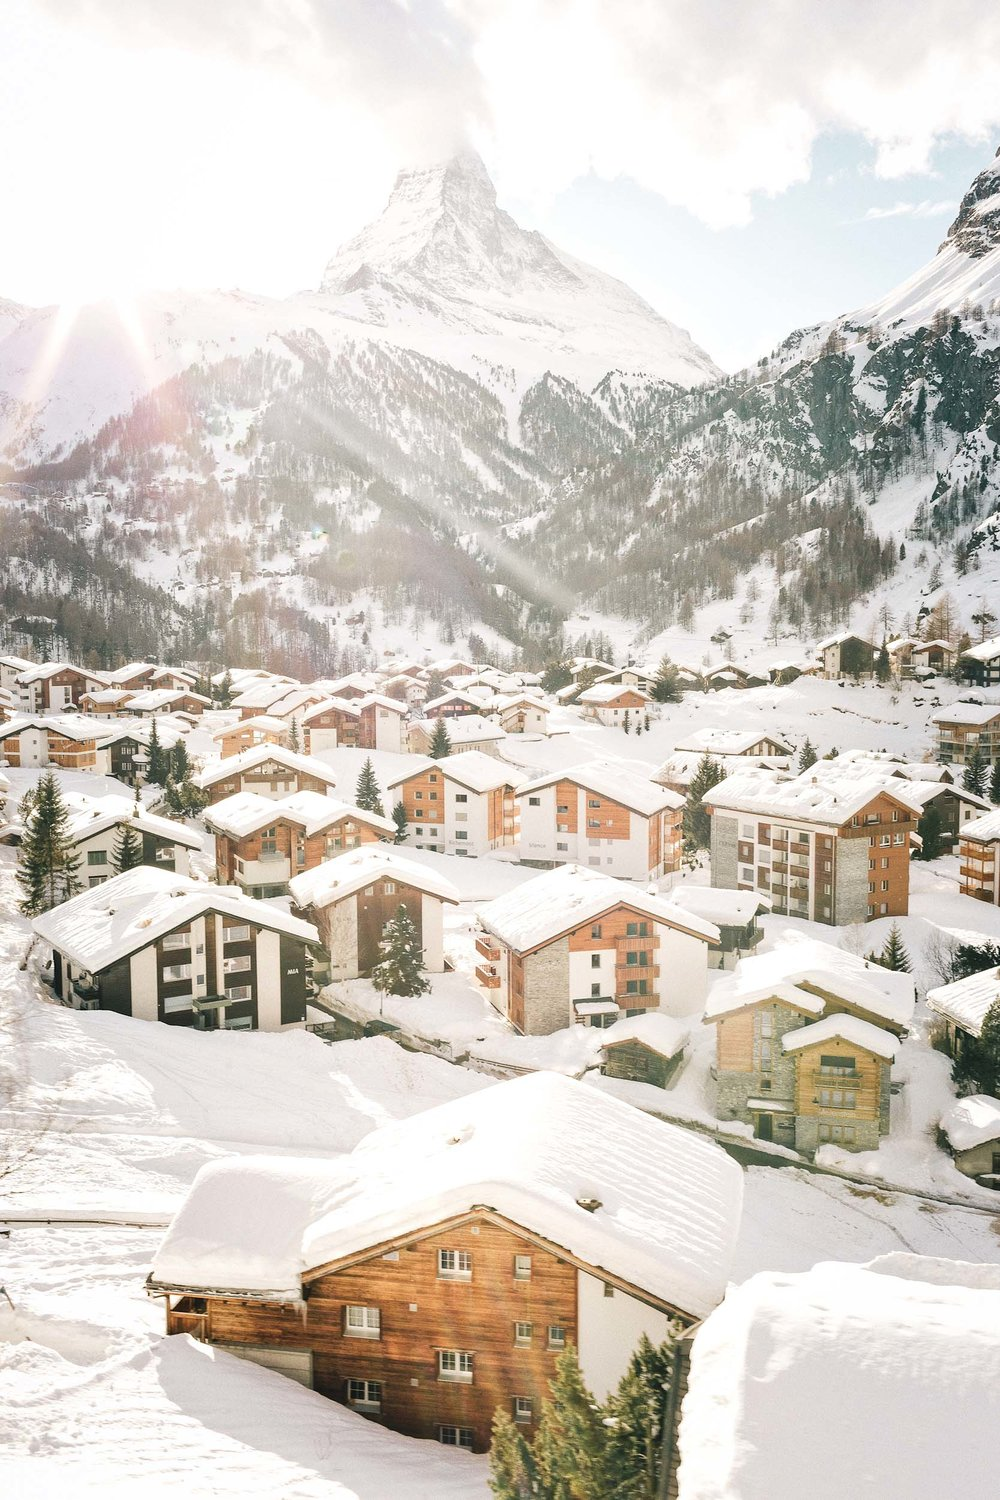 Zermatt and Gstaad in Switzerland make for the perfect one week Europe trip